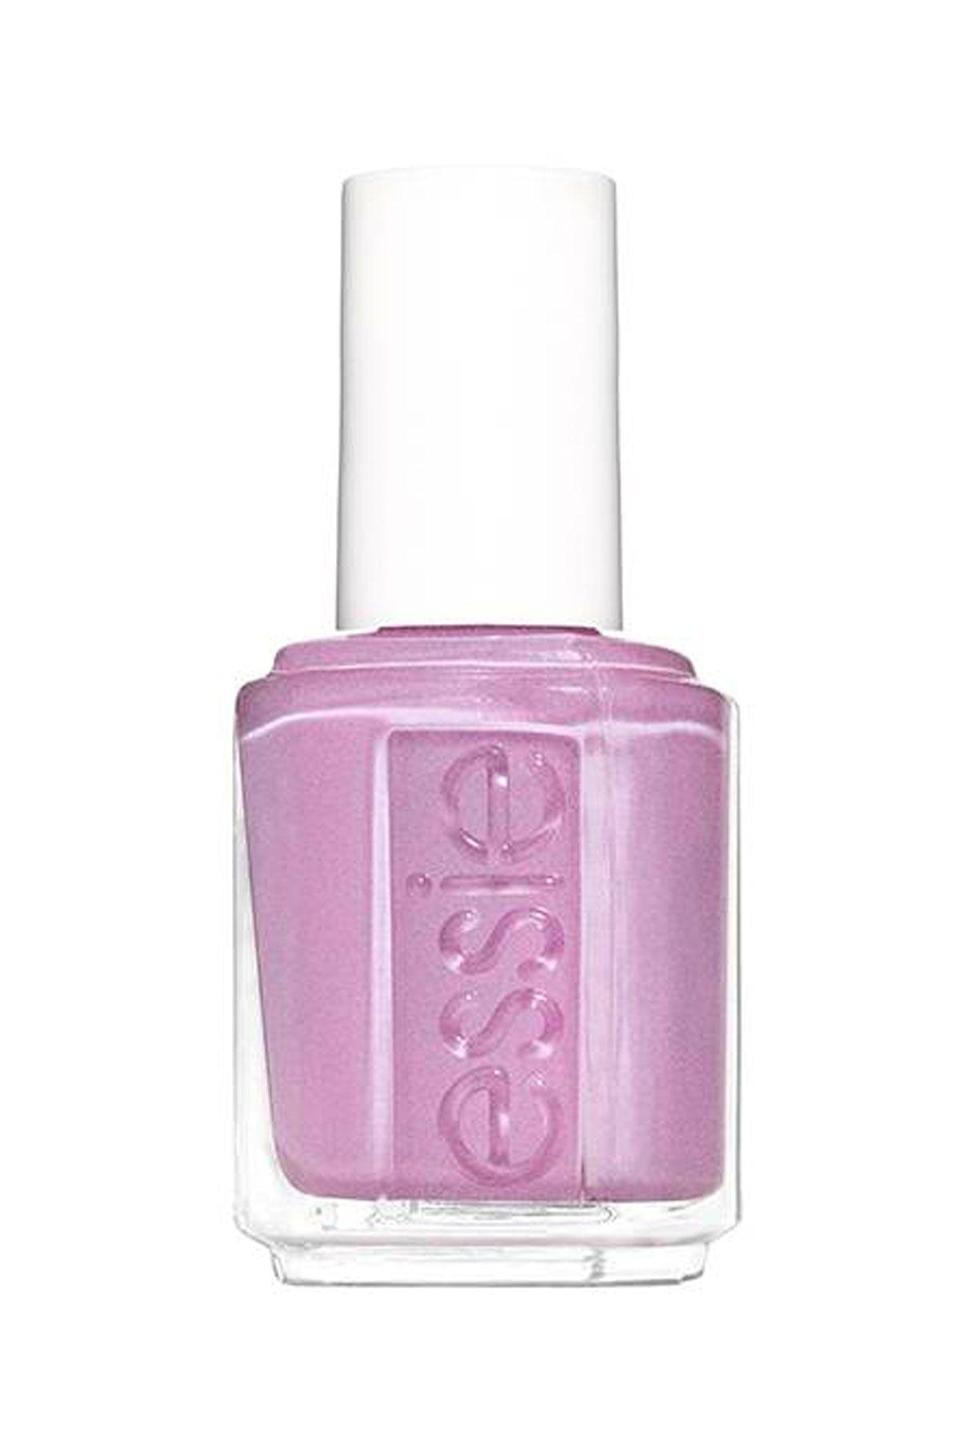 """<p><strong>Essie</strong></p><p>essie.com</p><p><strong>$4.30</strong></p><p><a href=""""https://www.essie.com/nail-polish/enamel/purples/spring-in-your-step"""" rel=""""nofollow noopener"""" target=""""_blank"""" data-ylk=""""slk:SHOP NOW"""" class=""""link rapid-noclick-resp"""">SHOP NOW</a></p><p>Metallic, shimmery shades are so in for spring, and this gorgeous iridescent lilac color is the perfect combo of trendy and traditional.<br></p>"""